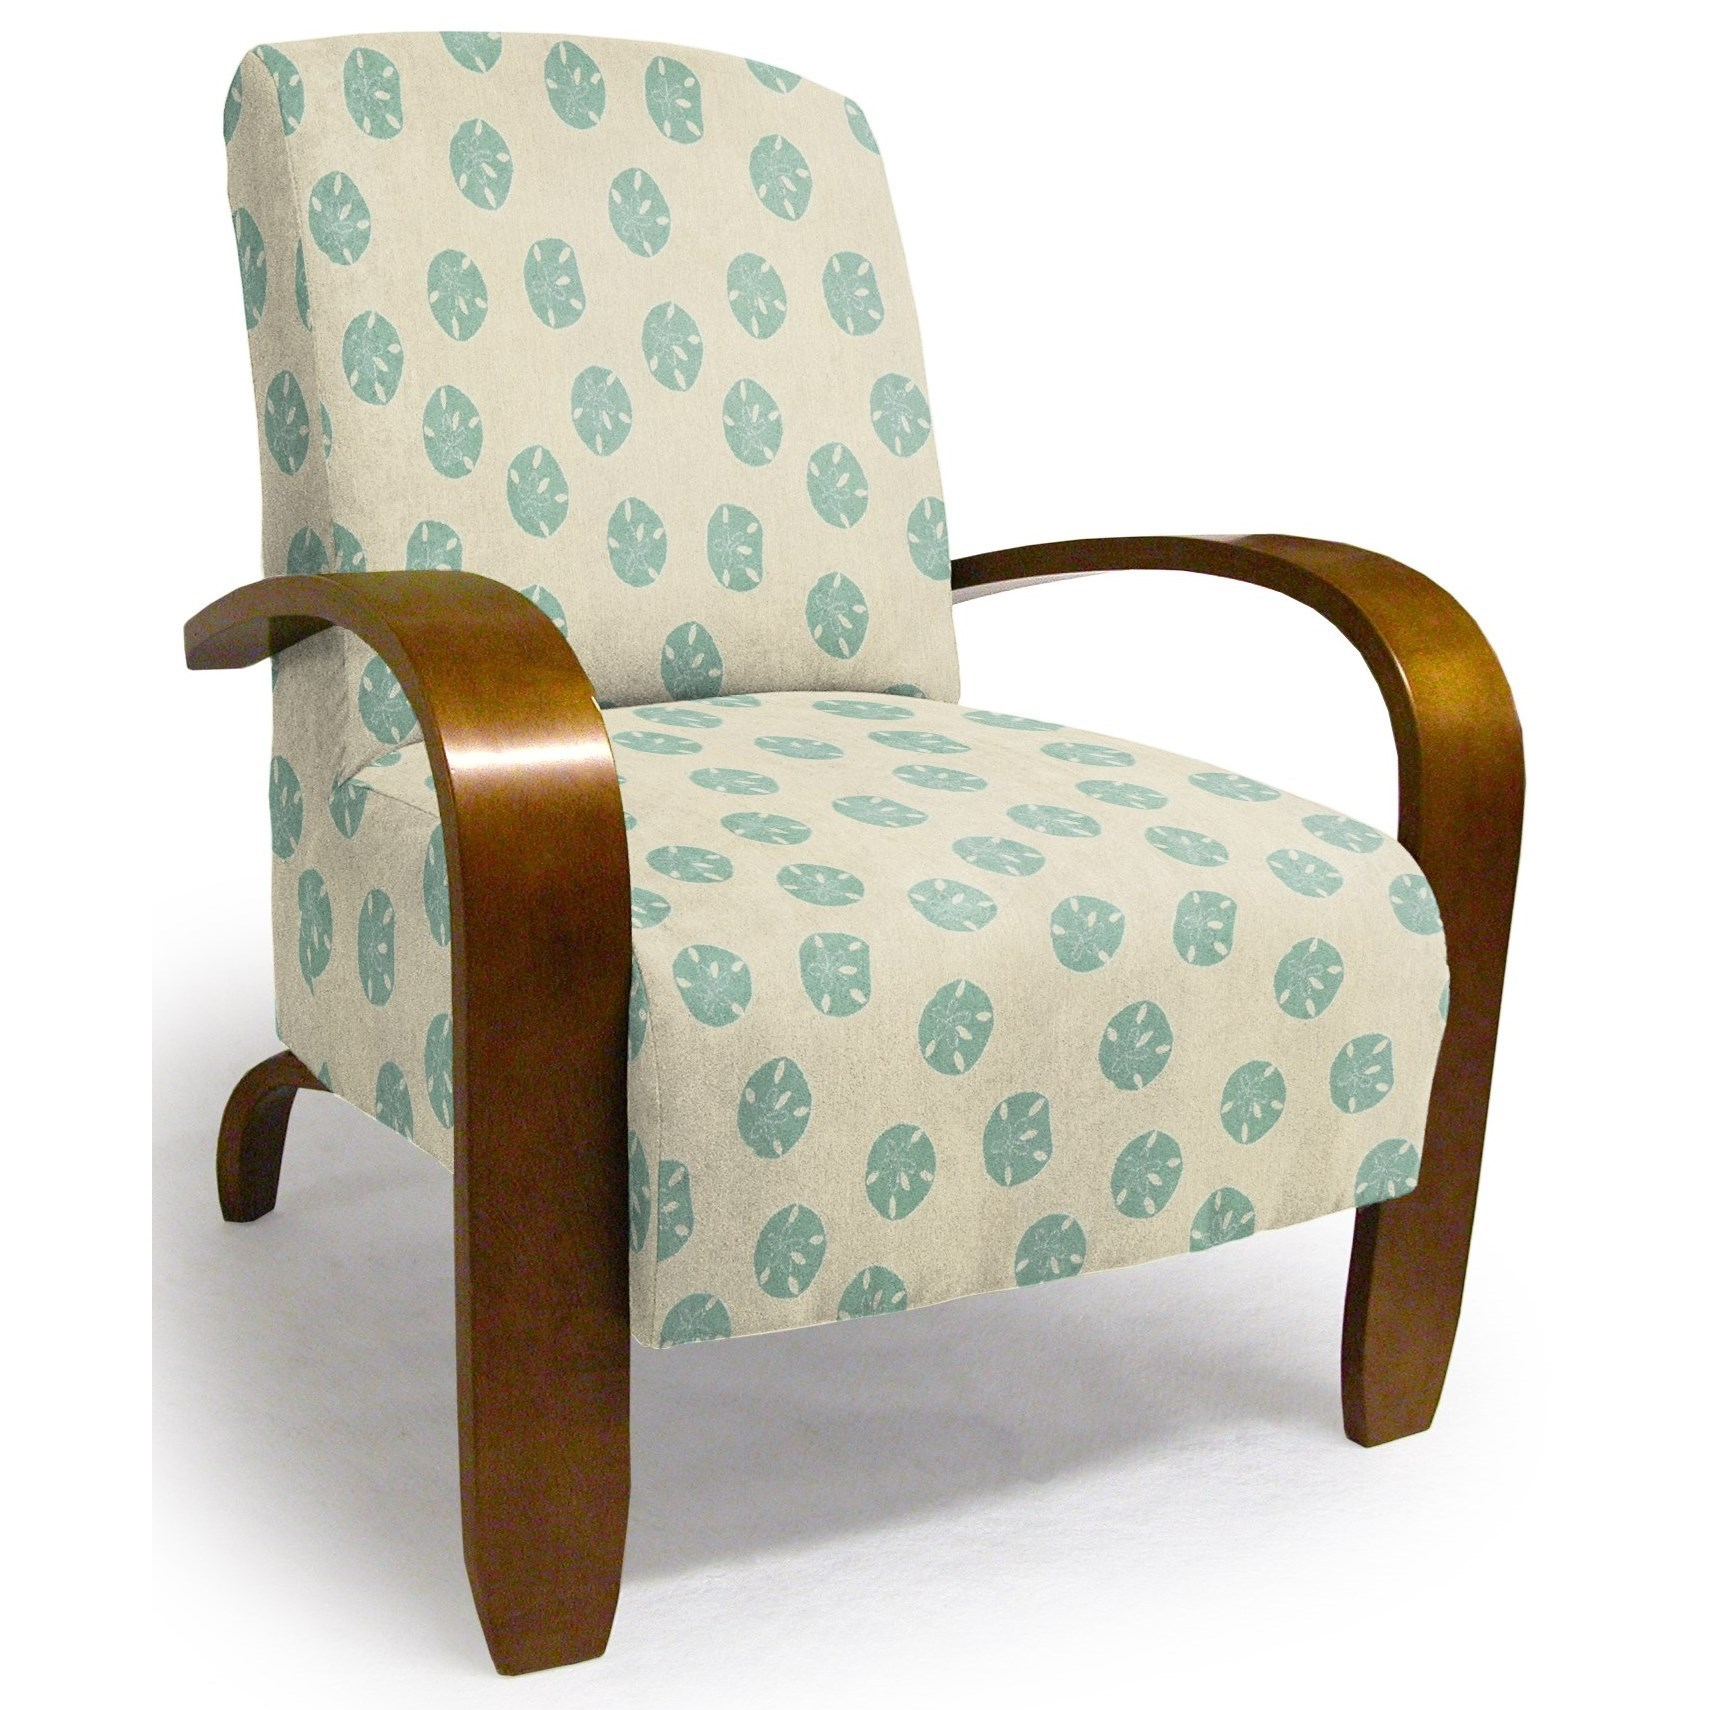 Best Home Furnishings Chairs - Accent Maravu Exposed Wood Accent Chair - Item Number: 3800-35532